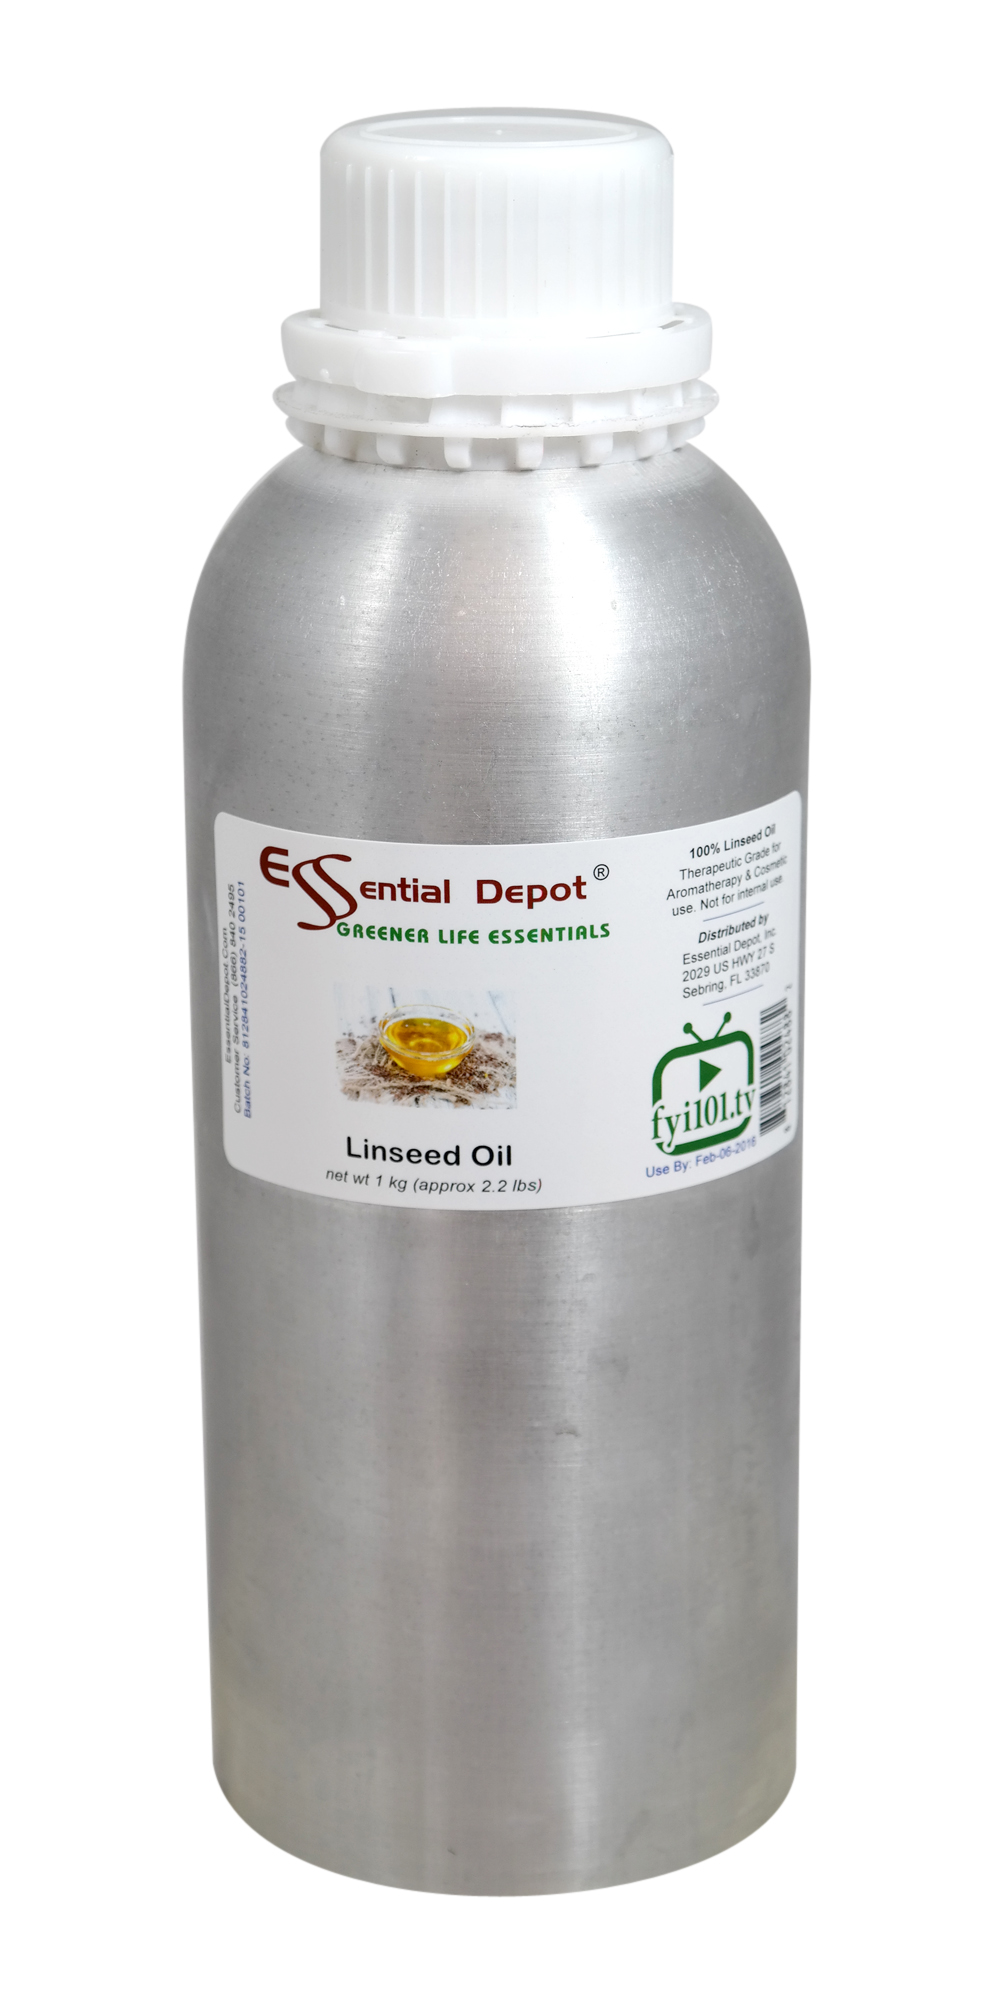 Linseed Oil - 1 kg. - Approx 2.2 lbs. - FREE US SHIPPING